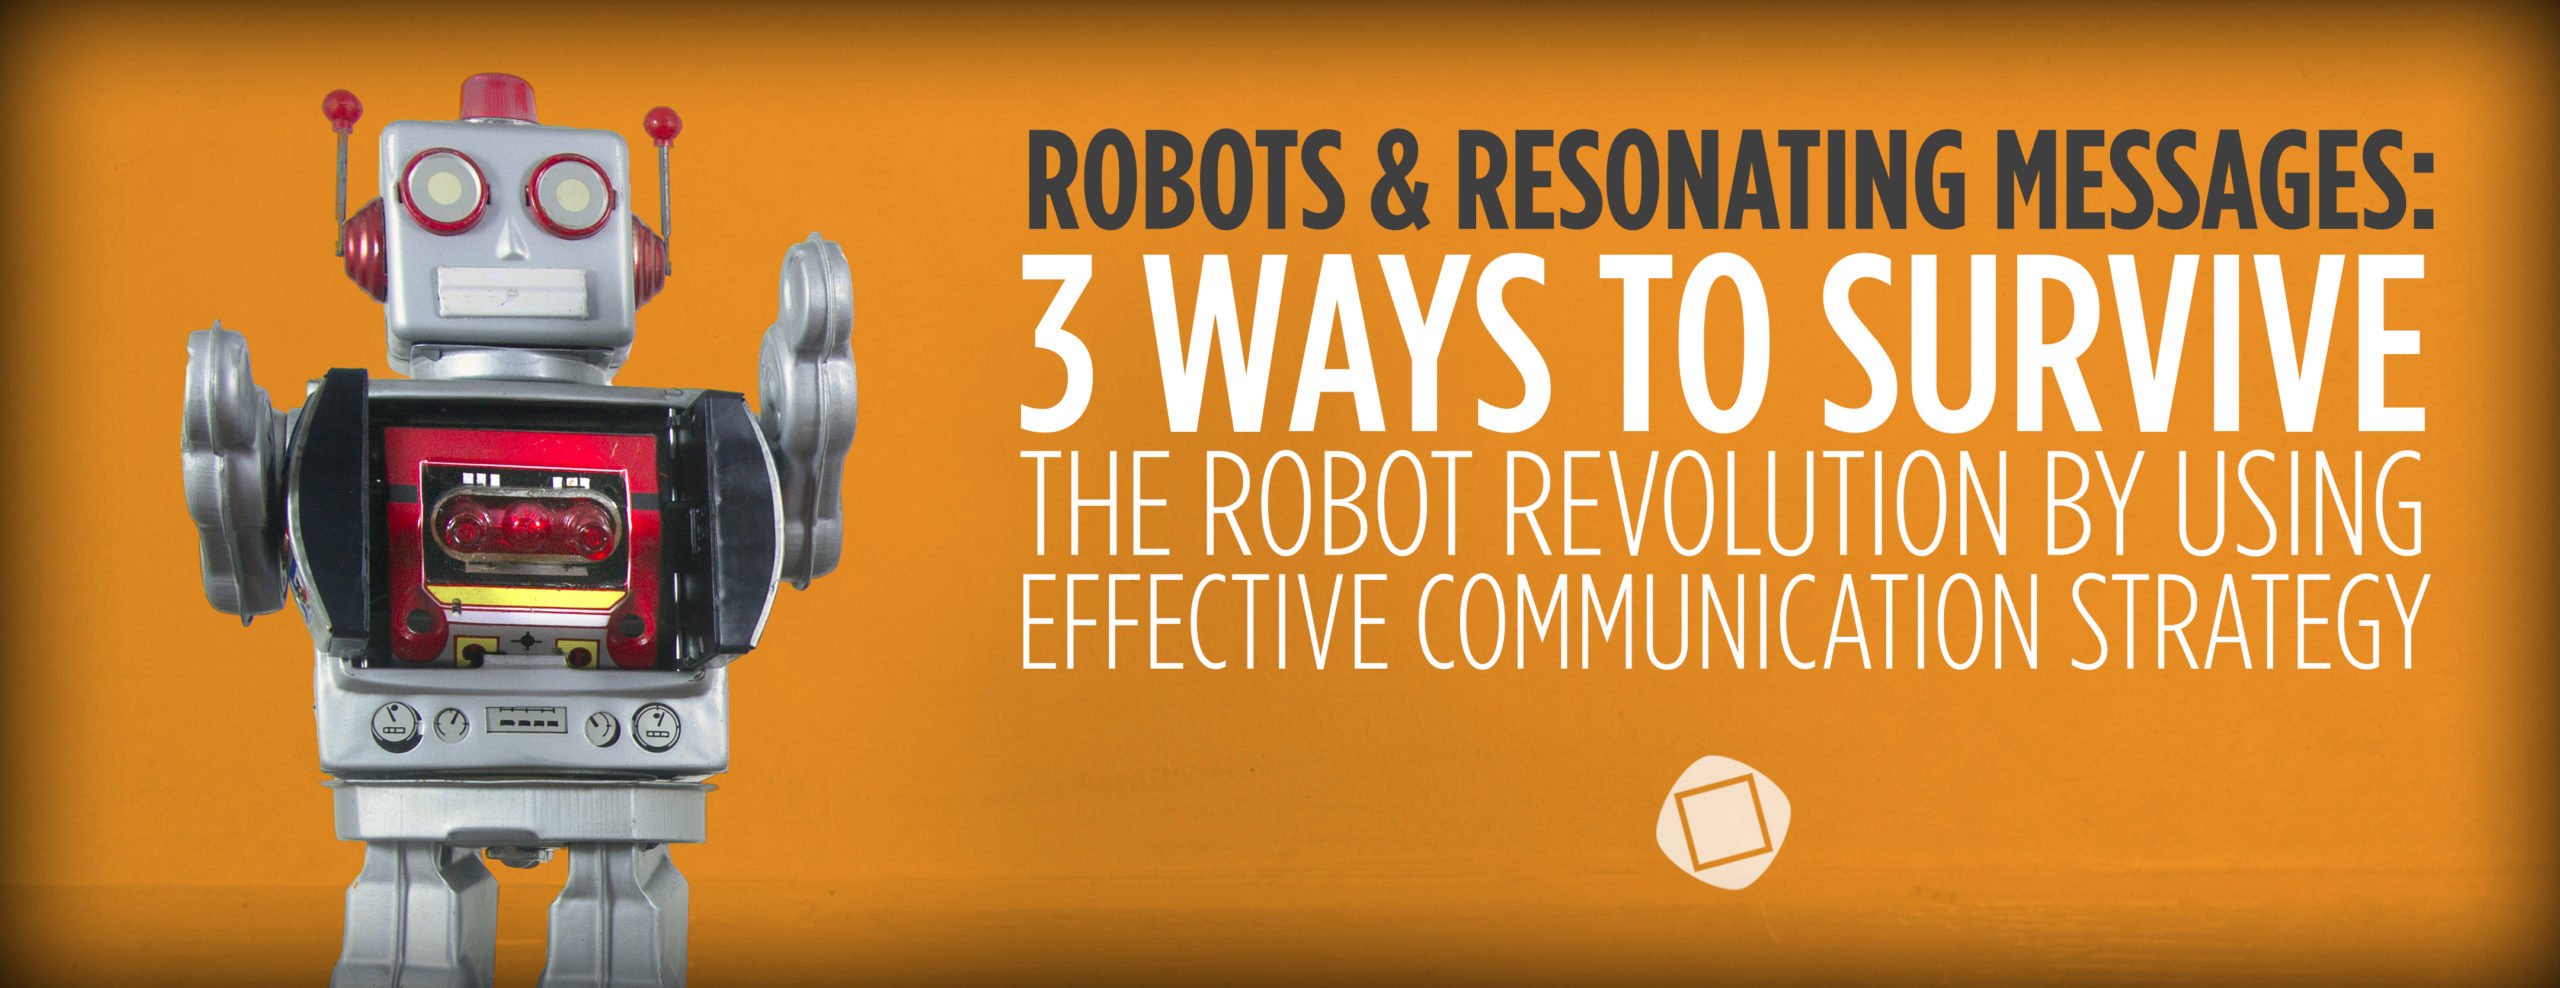 Robots & Resonating Messages: 3 Ways to Survive the Robot Revolution by Using Effective Communication Strategy